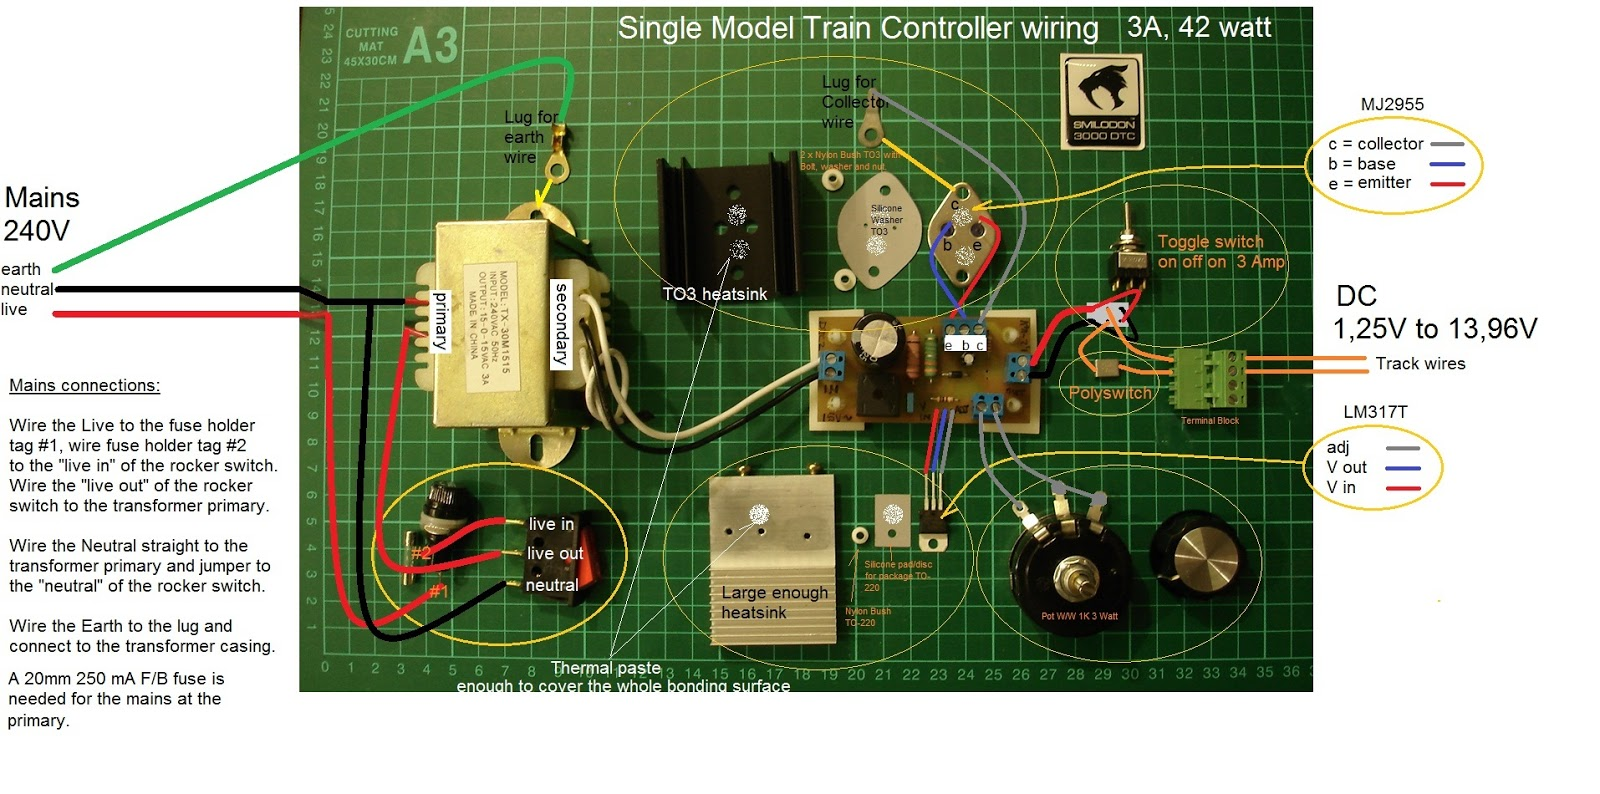 Aliwal North Sar Layout Dc Model Train Controllers Wiring Diagram 96v 20 Mm 250 Ma F B Fuse Meaning A Fast Blow Glass 20mm Long